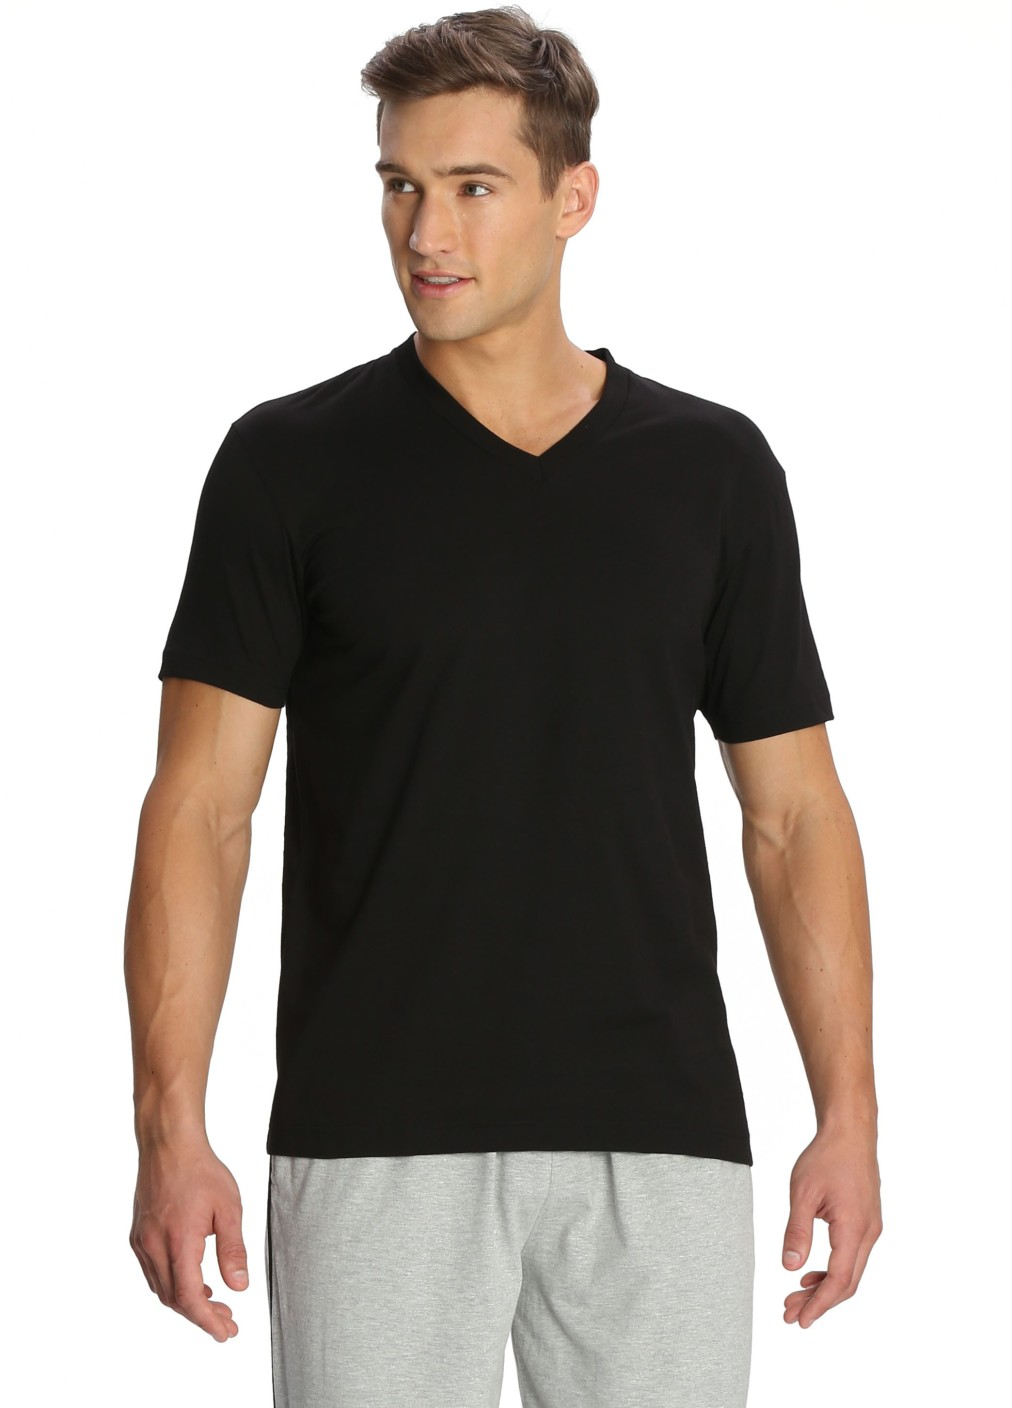 Jockey Solid Men 39 S V Neck Black T Shirt Buy Black Jockey